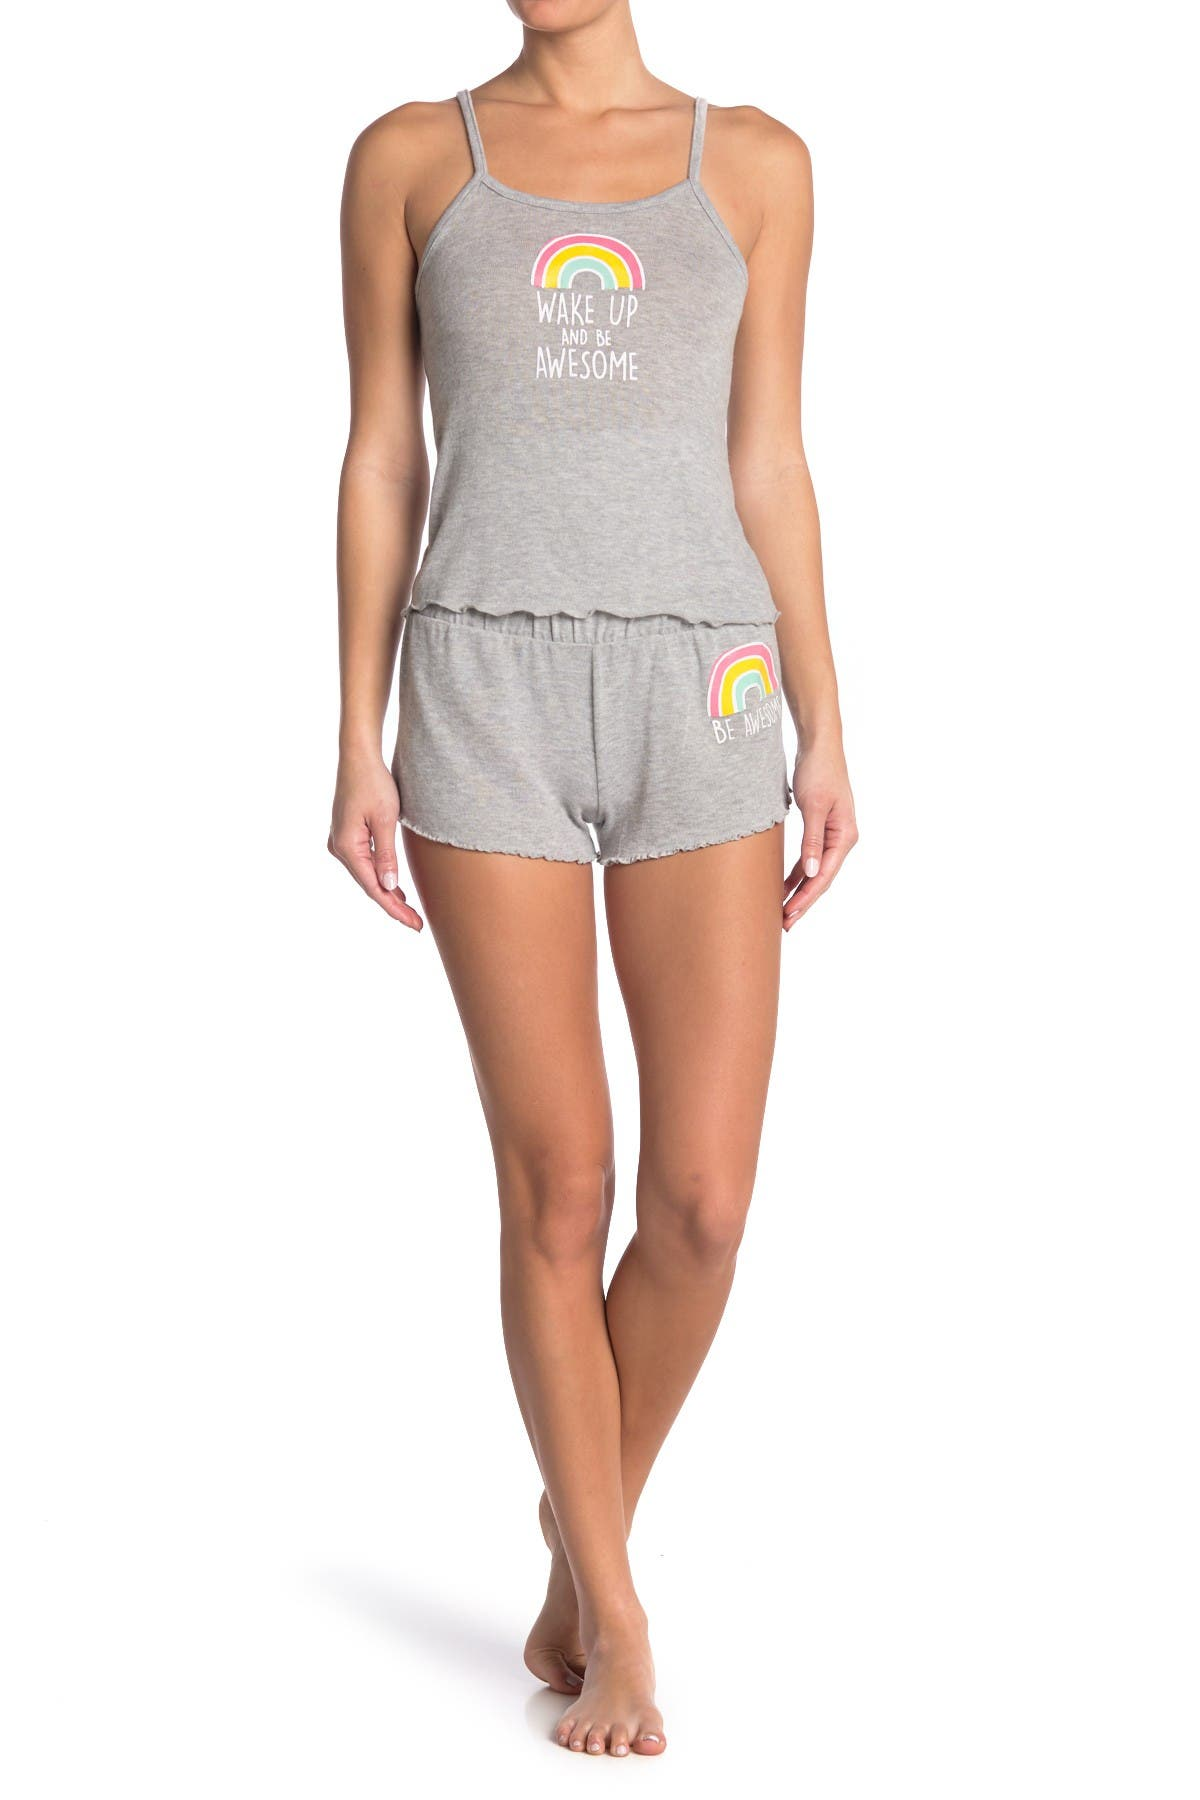 Image of Rampage Wake Up And Be Awesome Pajama Set